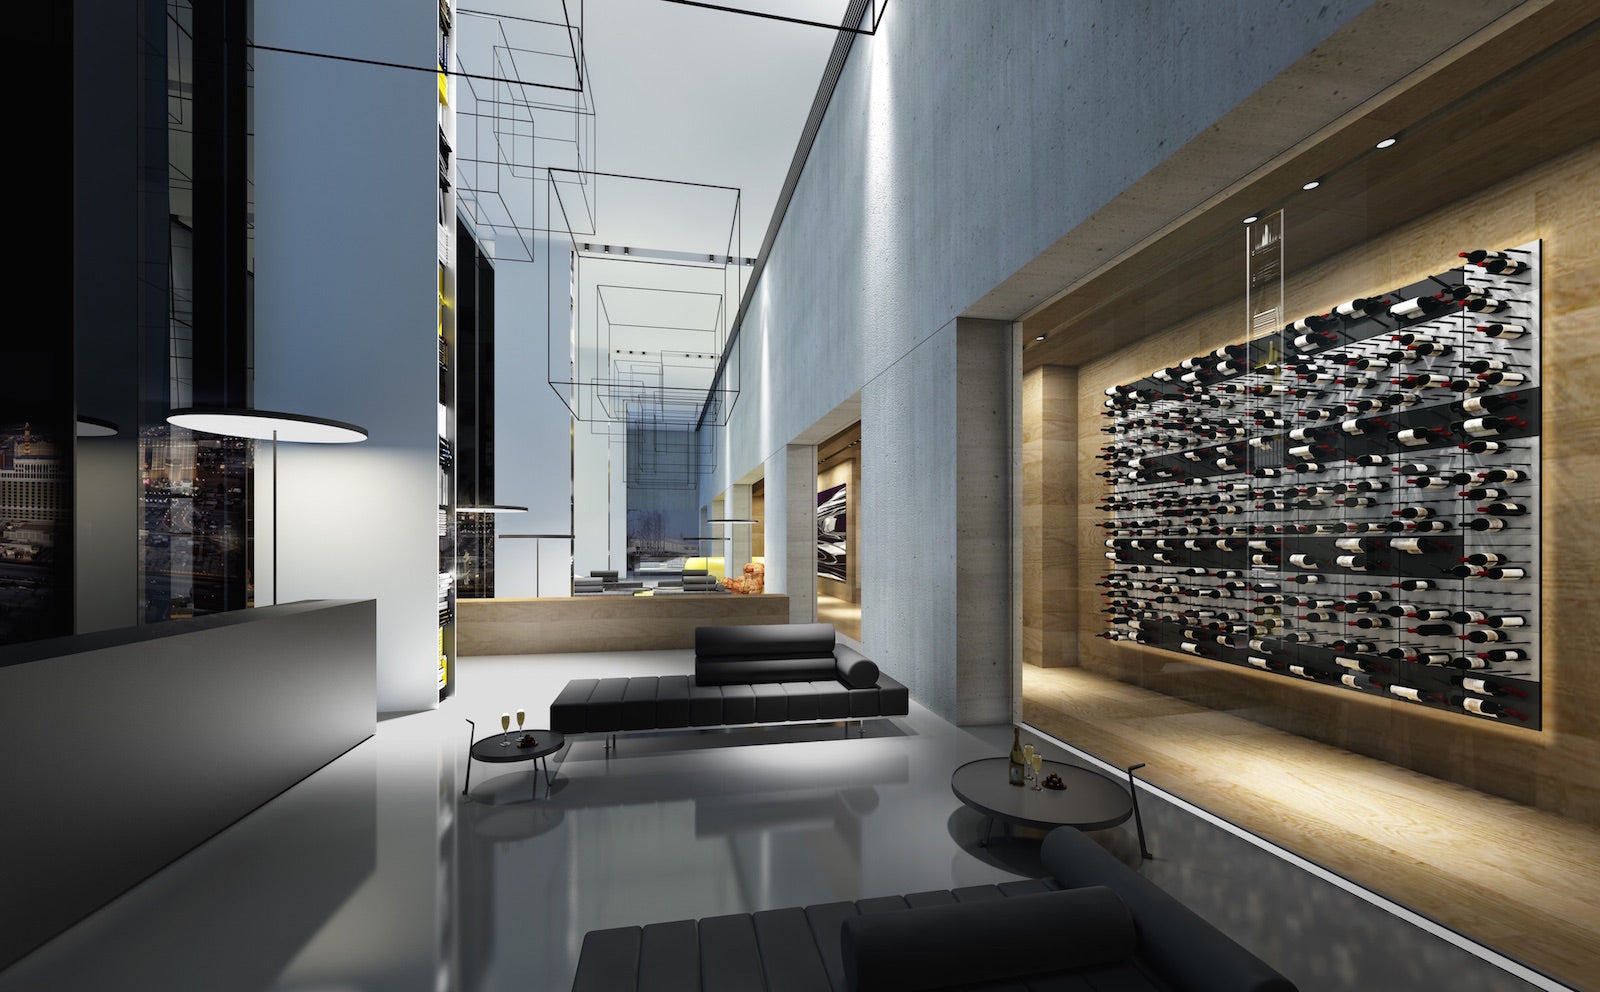 luxury hotel glass-walled wine display